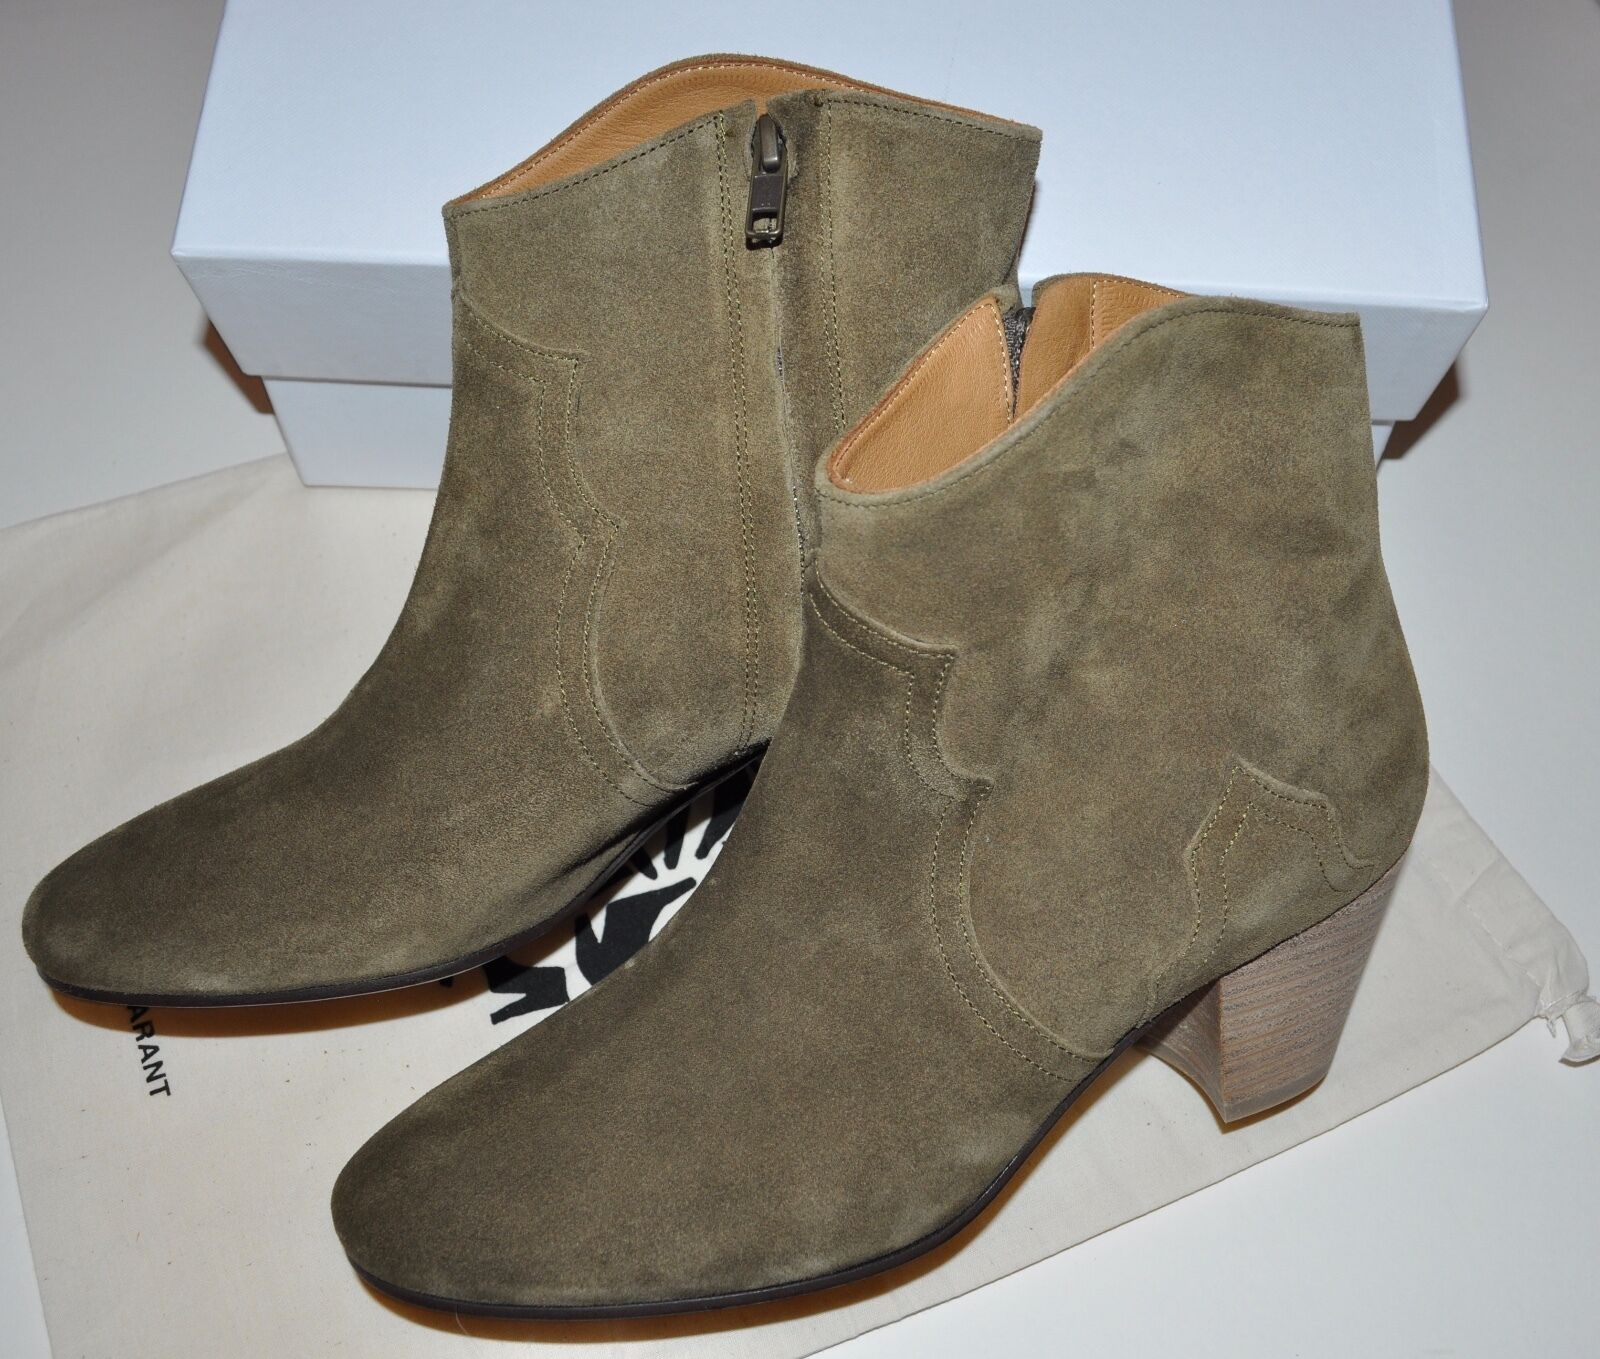 Isabel Marant Dicker Boots in Light Brown Suede Leather Size FR 40